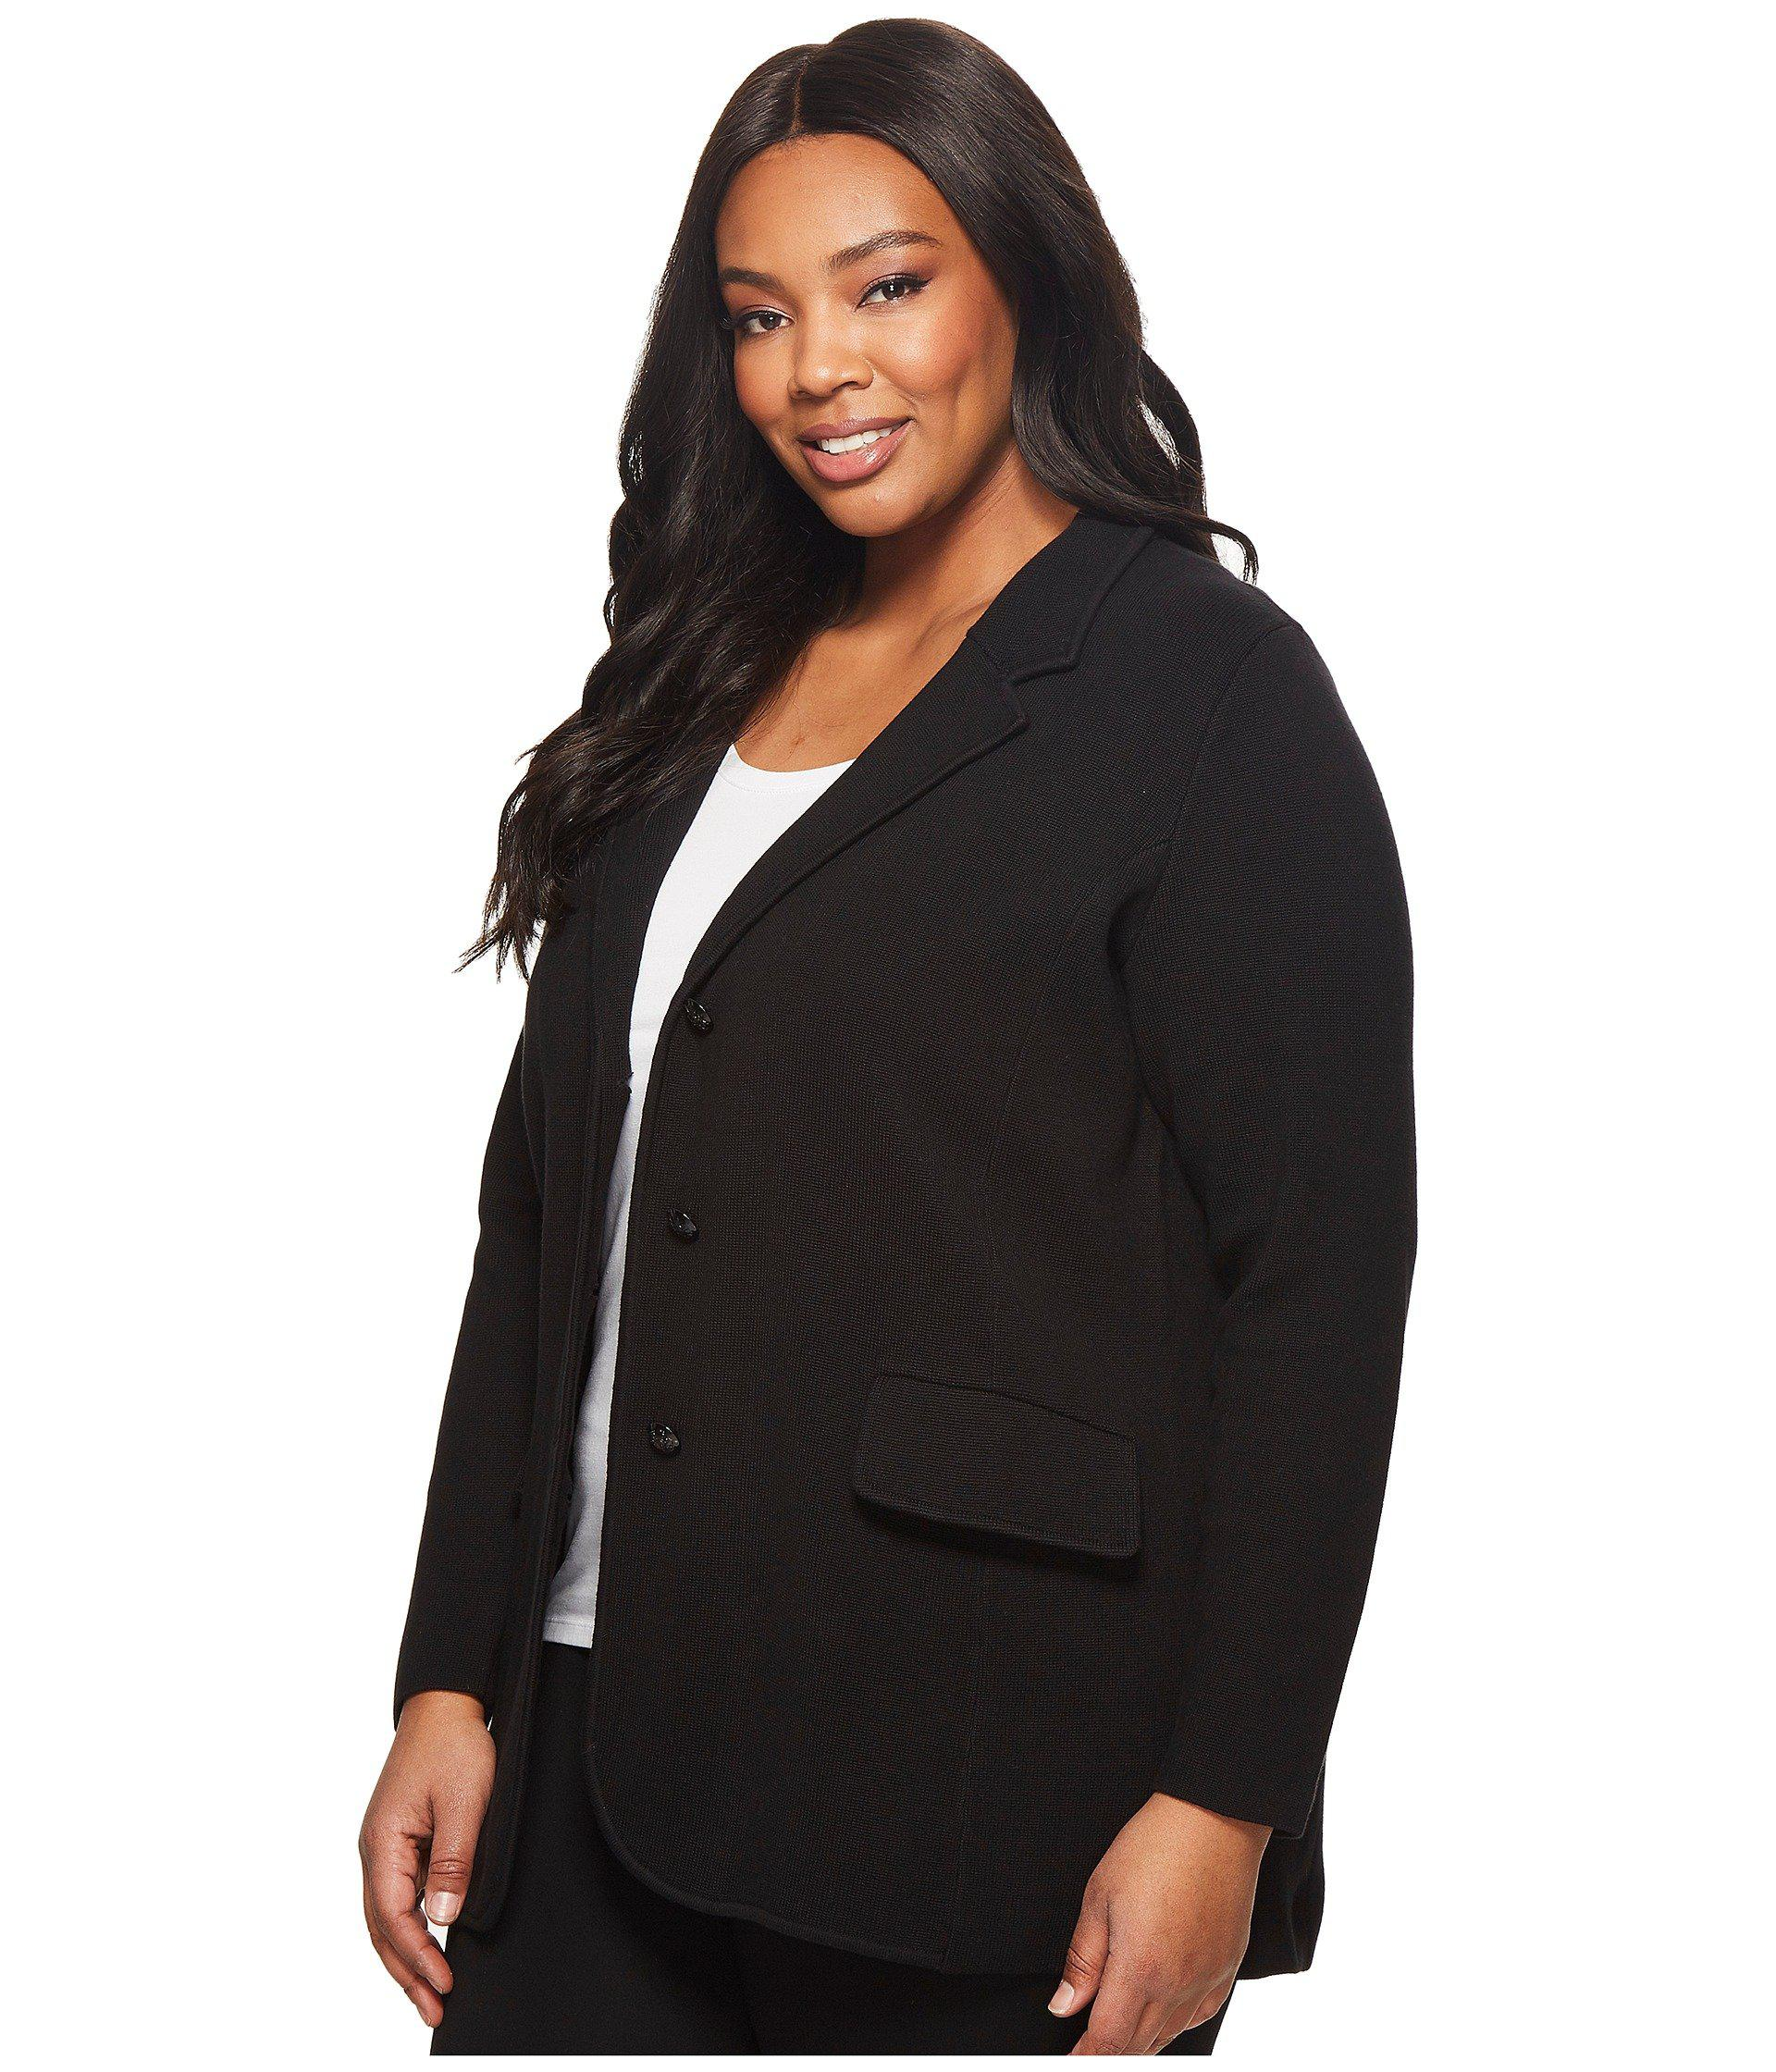 8aede59bdbf Lauren by Ralph Lauren Plus Size Knit Sweater Blazer (black) Women s Jacket  in Black - Lyst